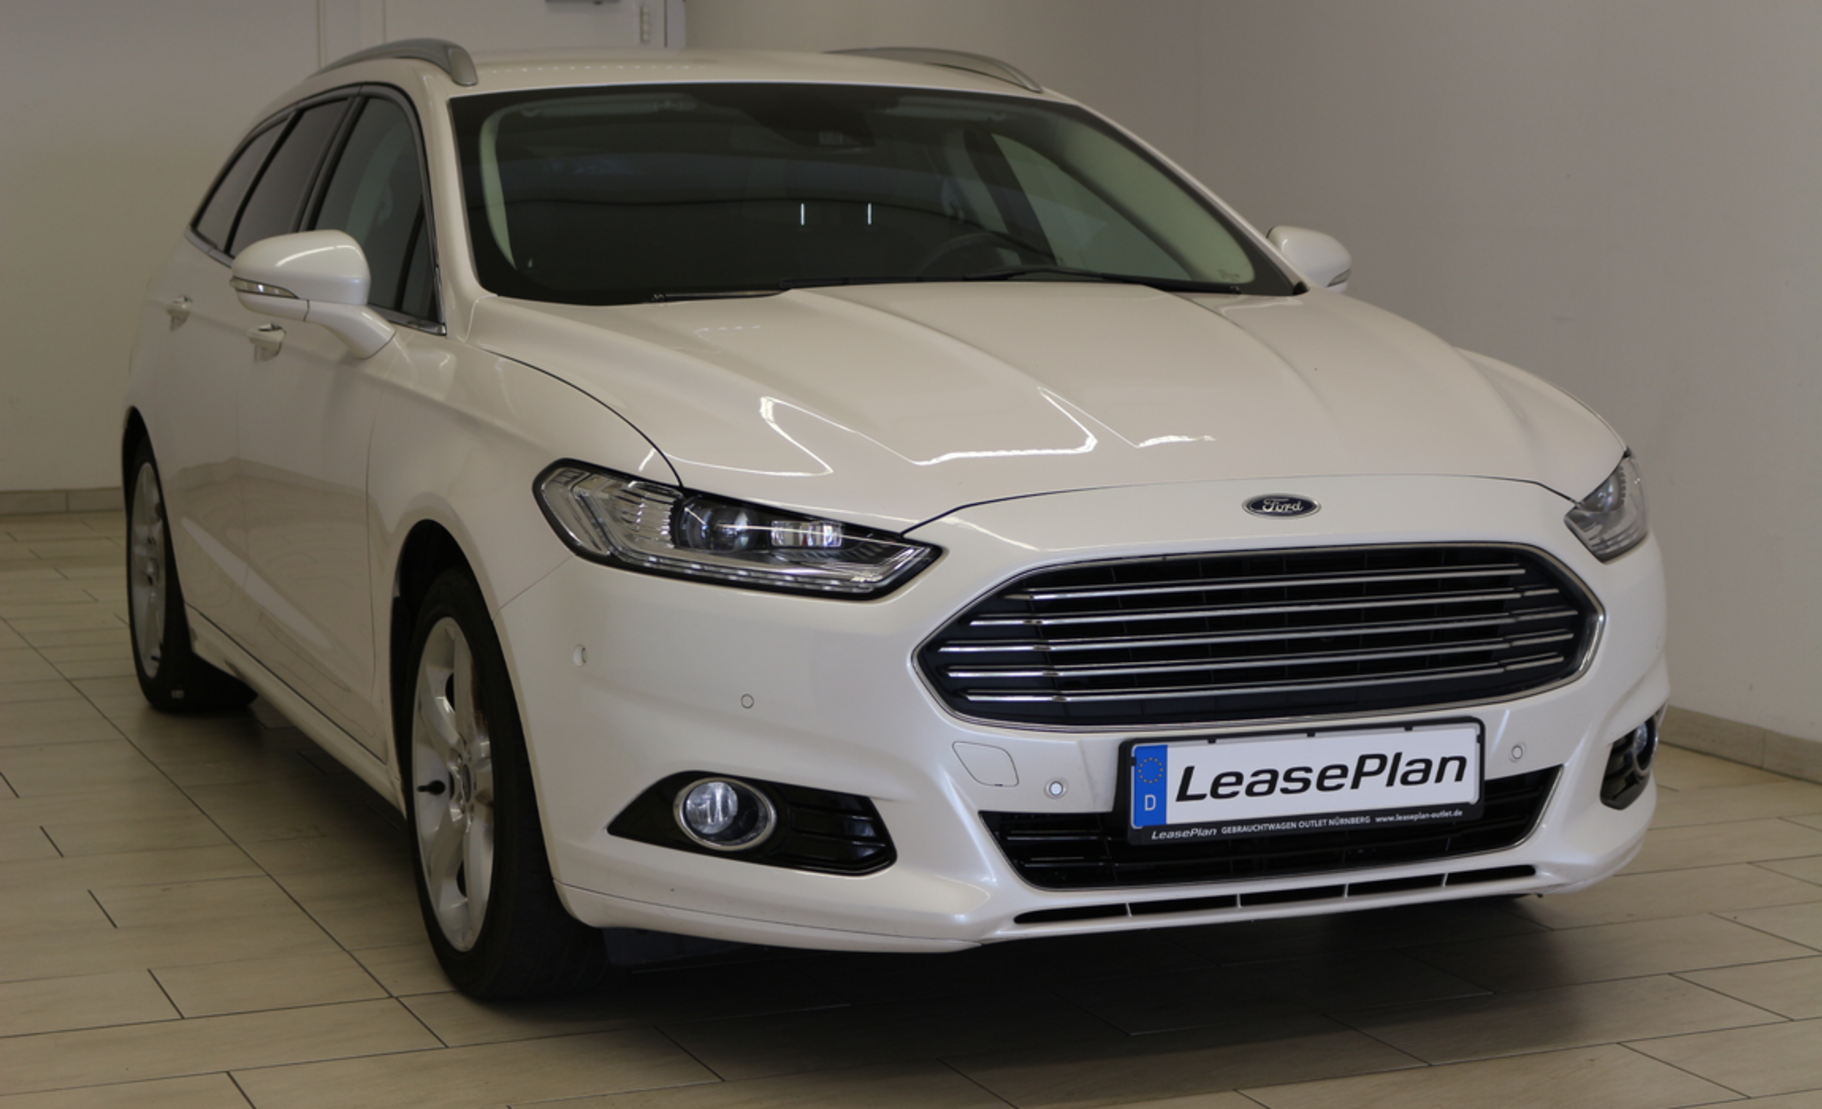 Ford Mondeo Turnier 2.0 Eco Boost Start-Stopp Autom. Titanium (570620) detail1